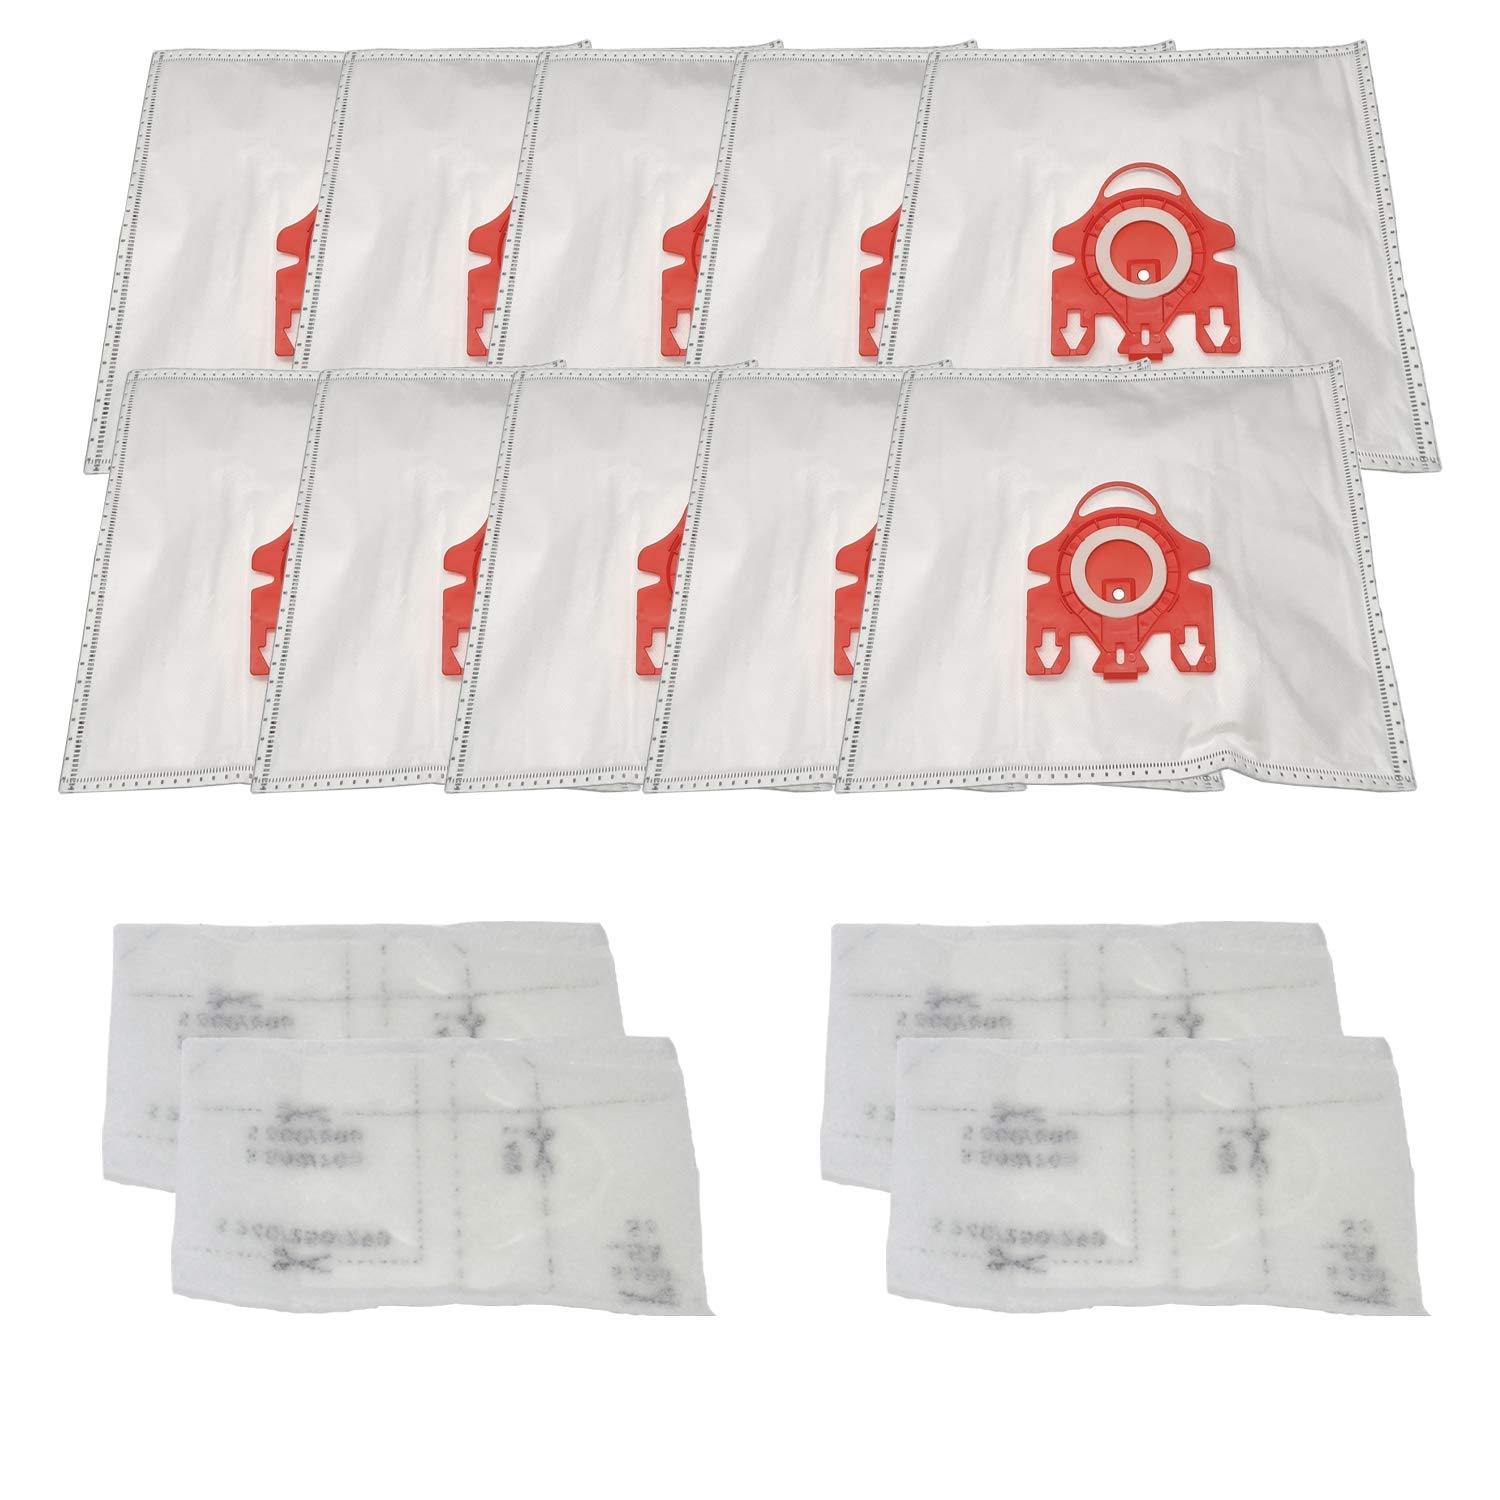 6 Micro Filters /& 1 HEPA Filter for Miele S514 6 Vacuum Bags